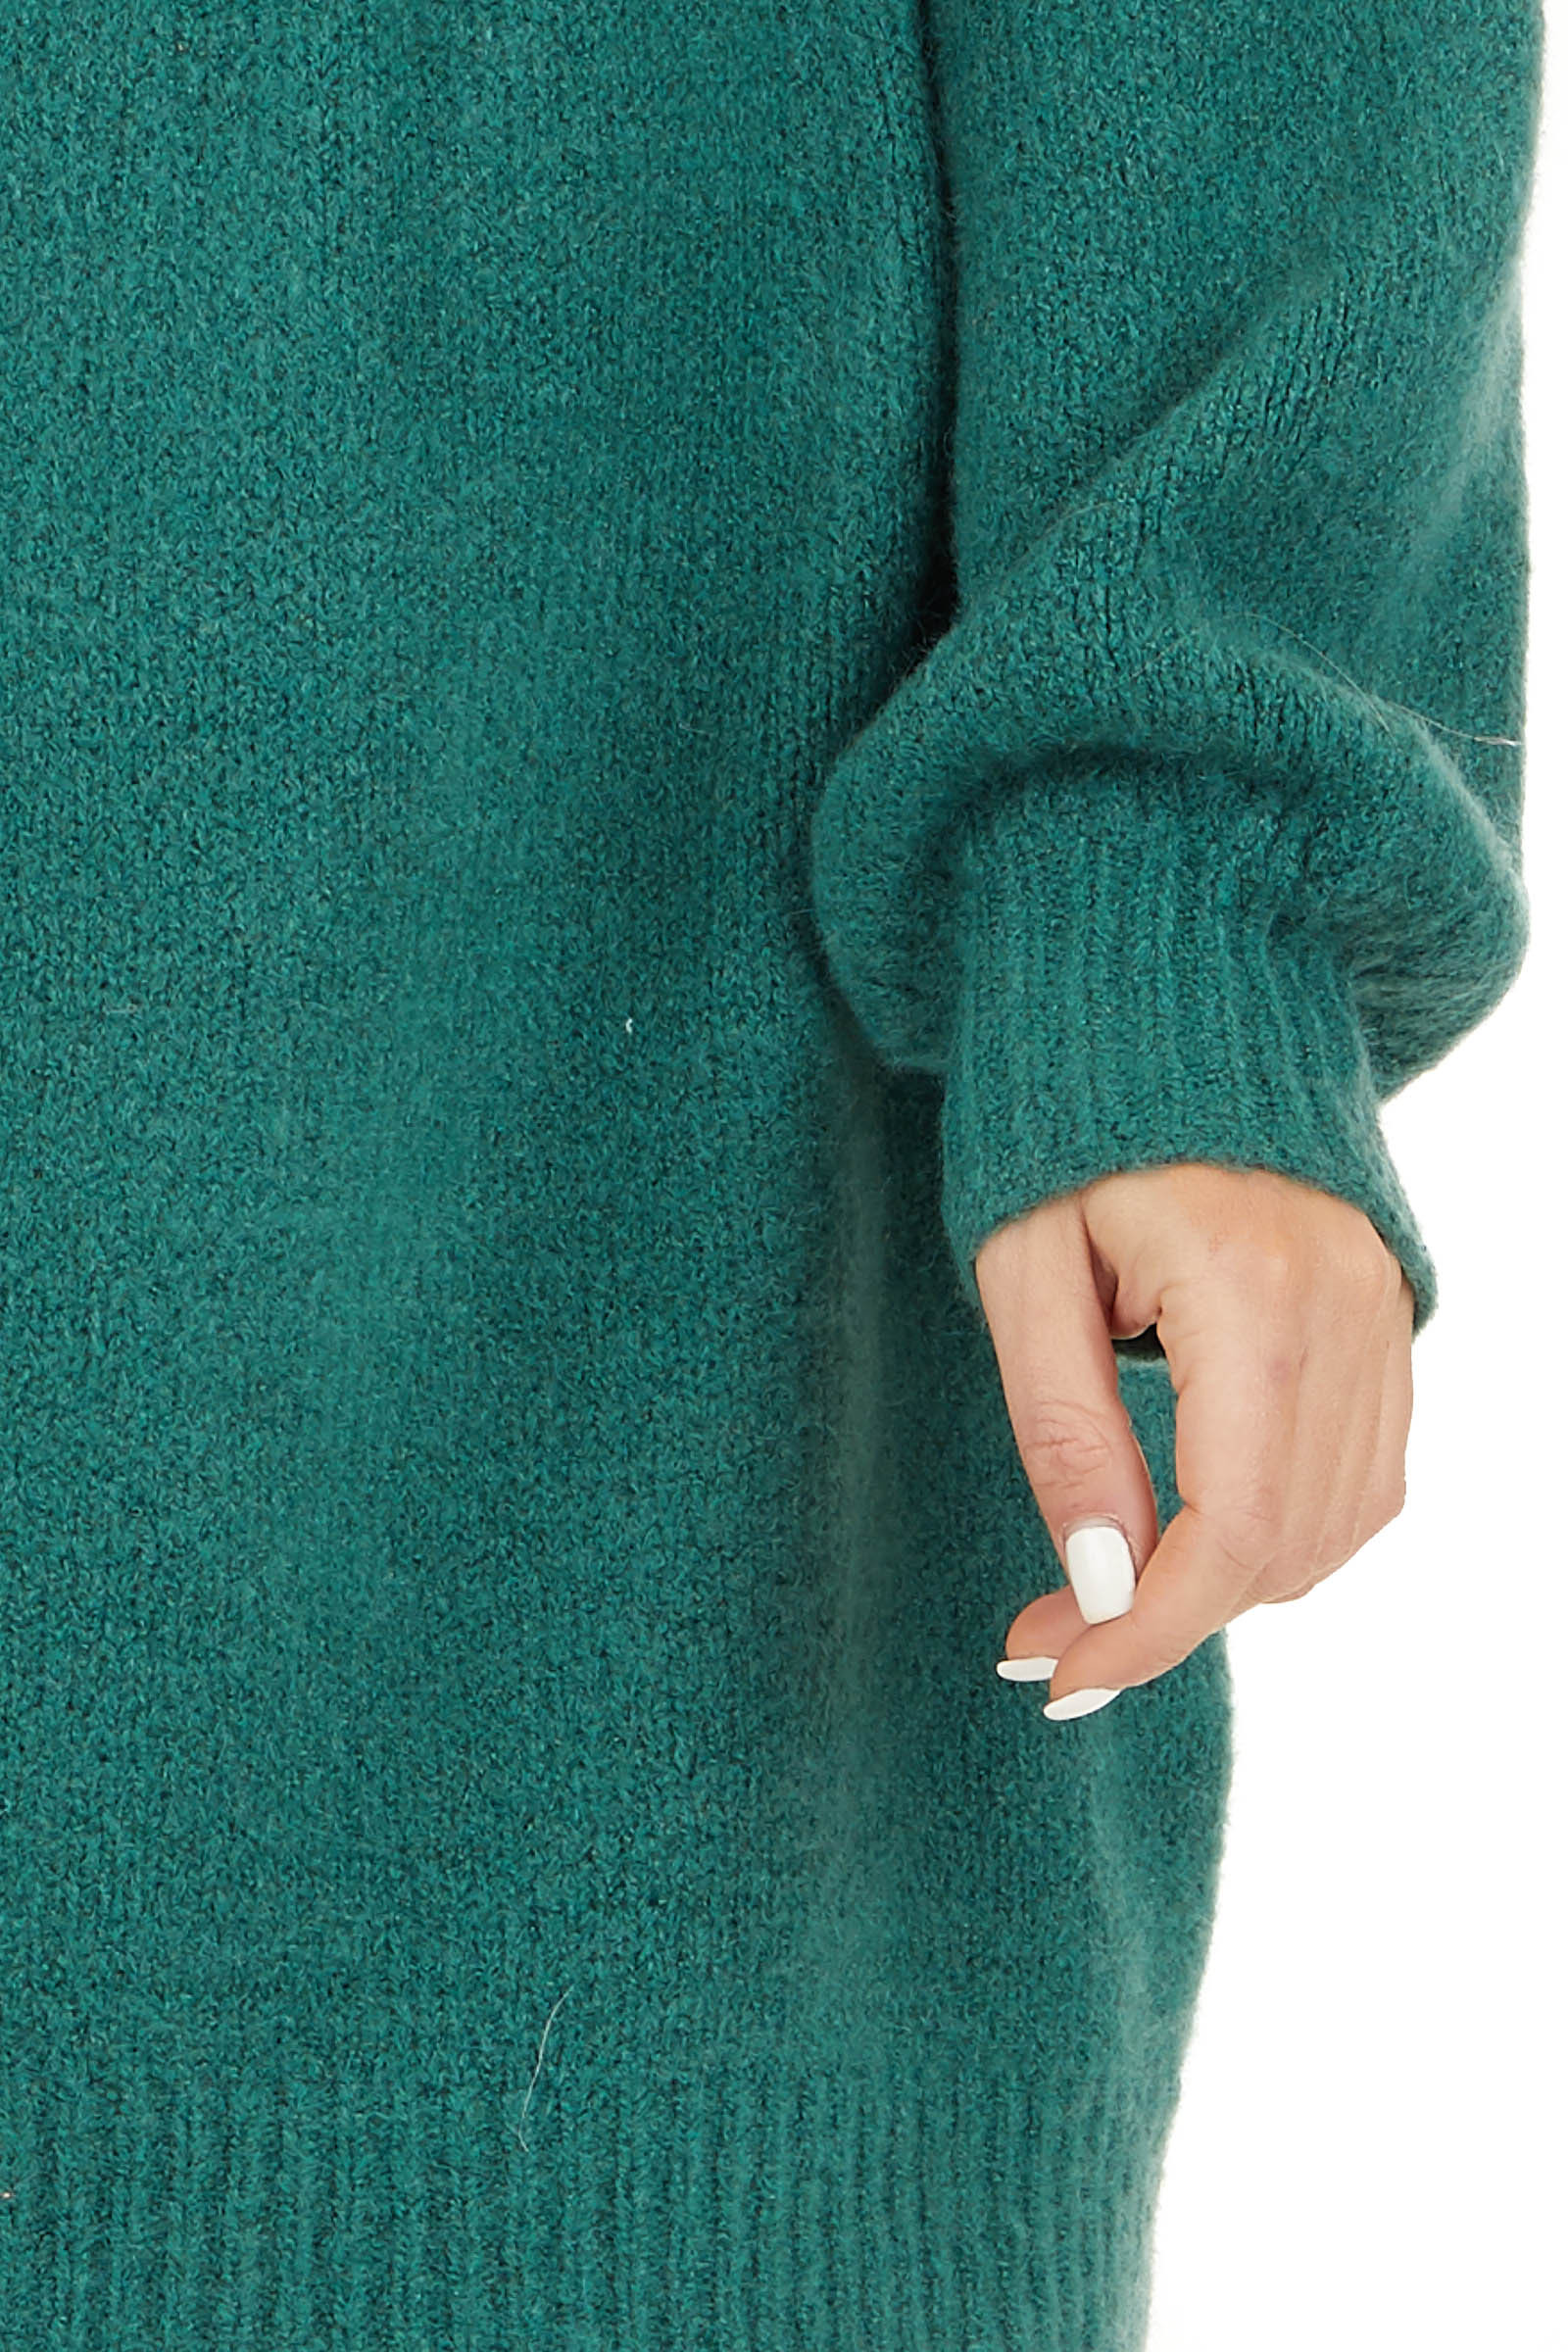 Pine Green Mock Neck Sweater Dress with Long Bubble Sleeves detail